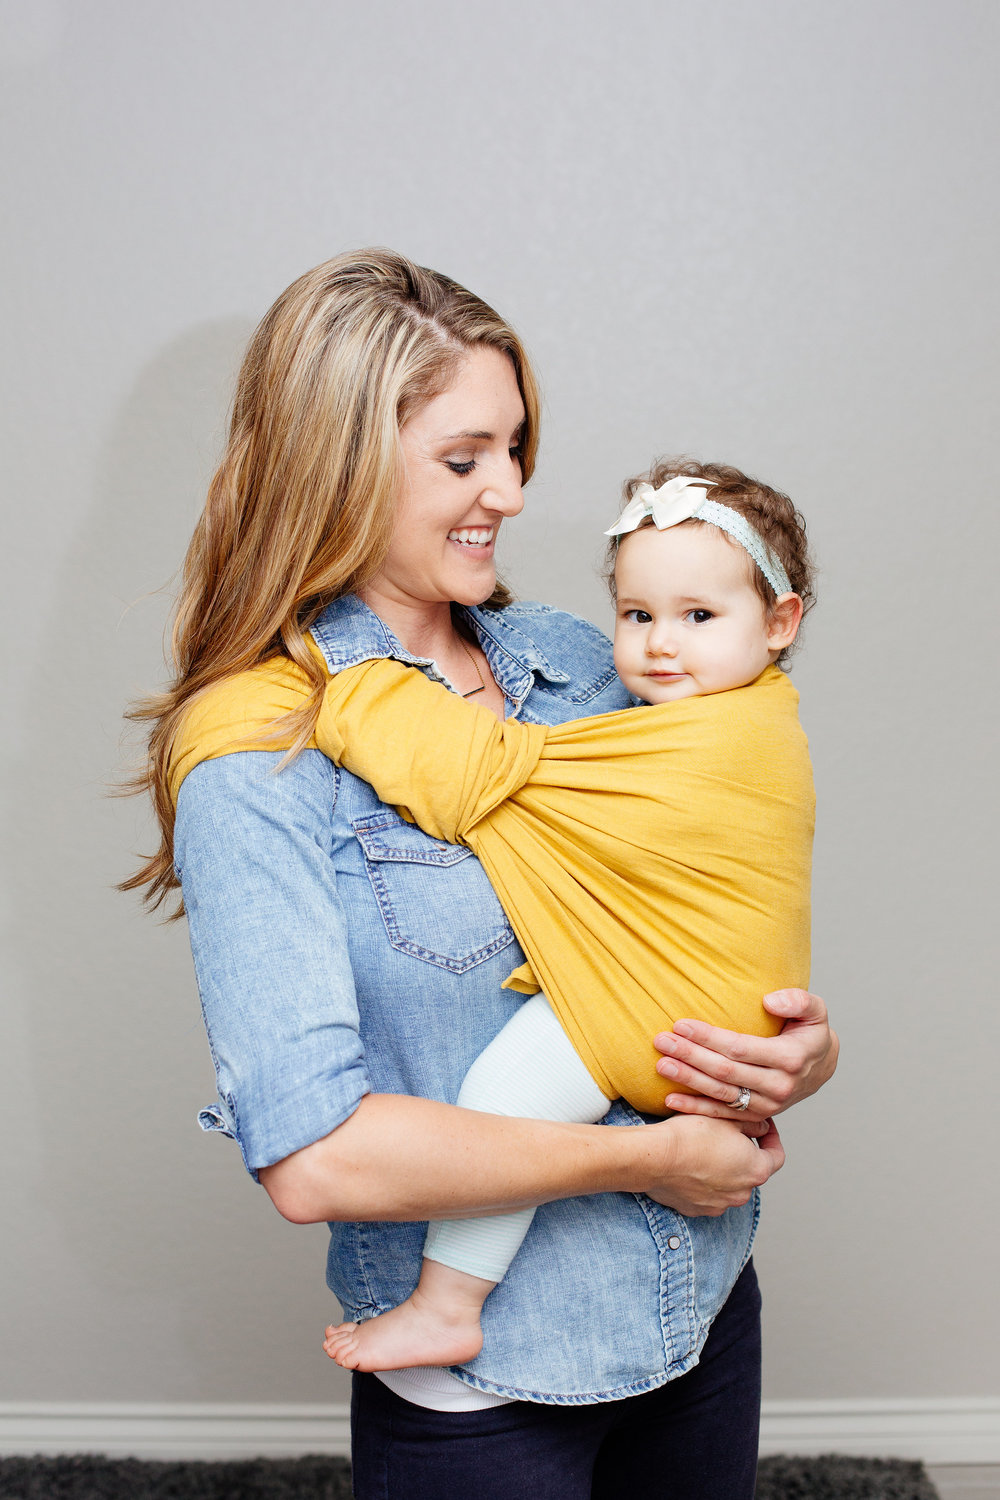 Tail wrap: An easy way to store the sling tail is by wrapping the tail around the rings and simply tucking in.   Nursing: The tail can be used as both a cover or a sunshield while feeding your baby.